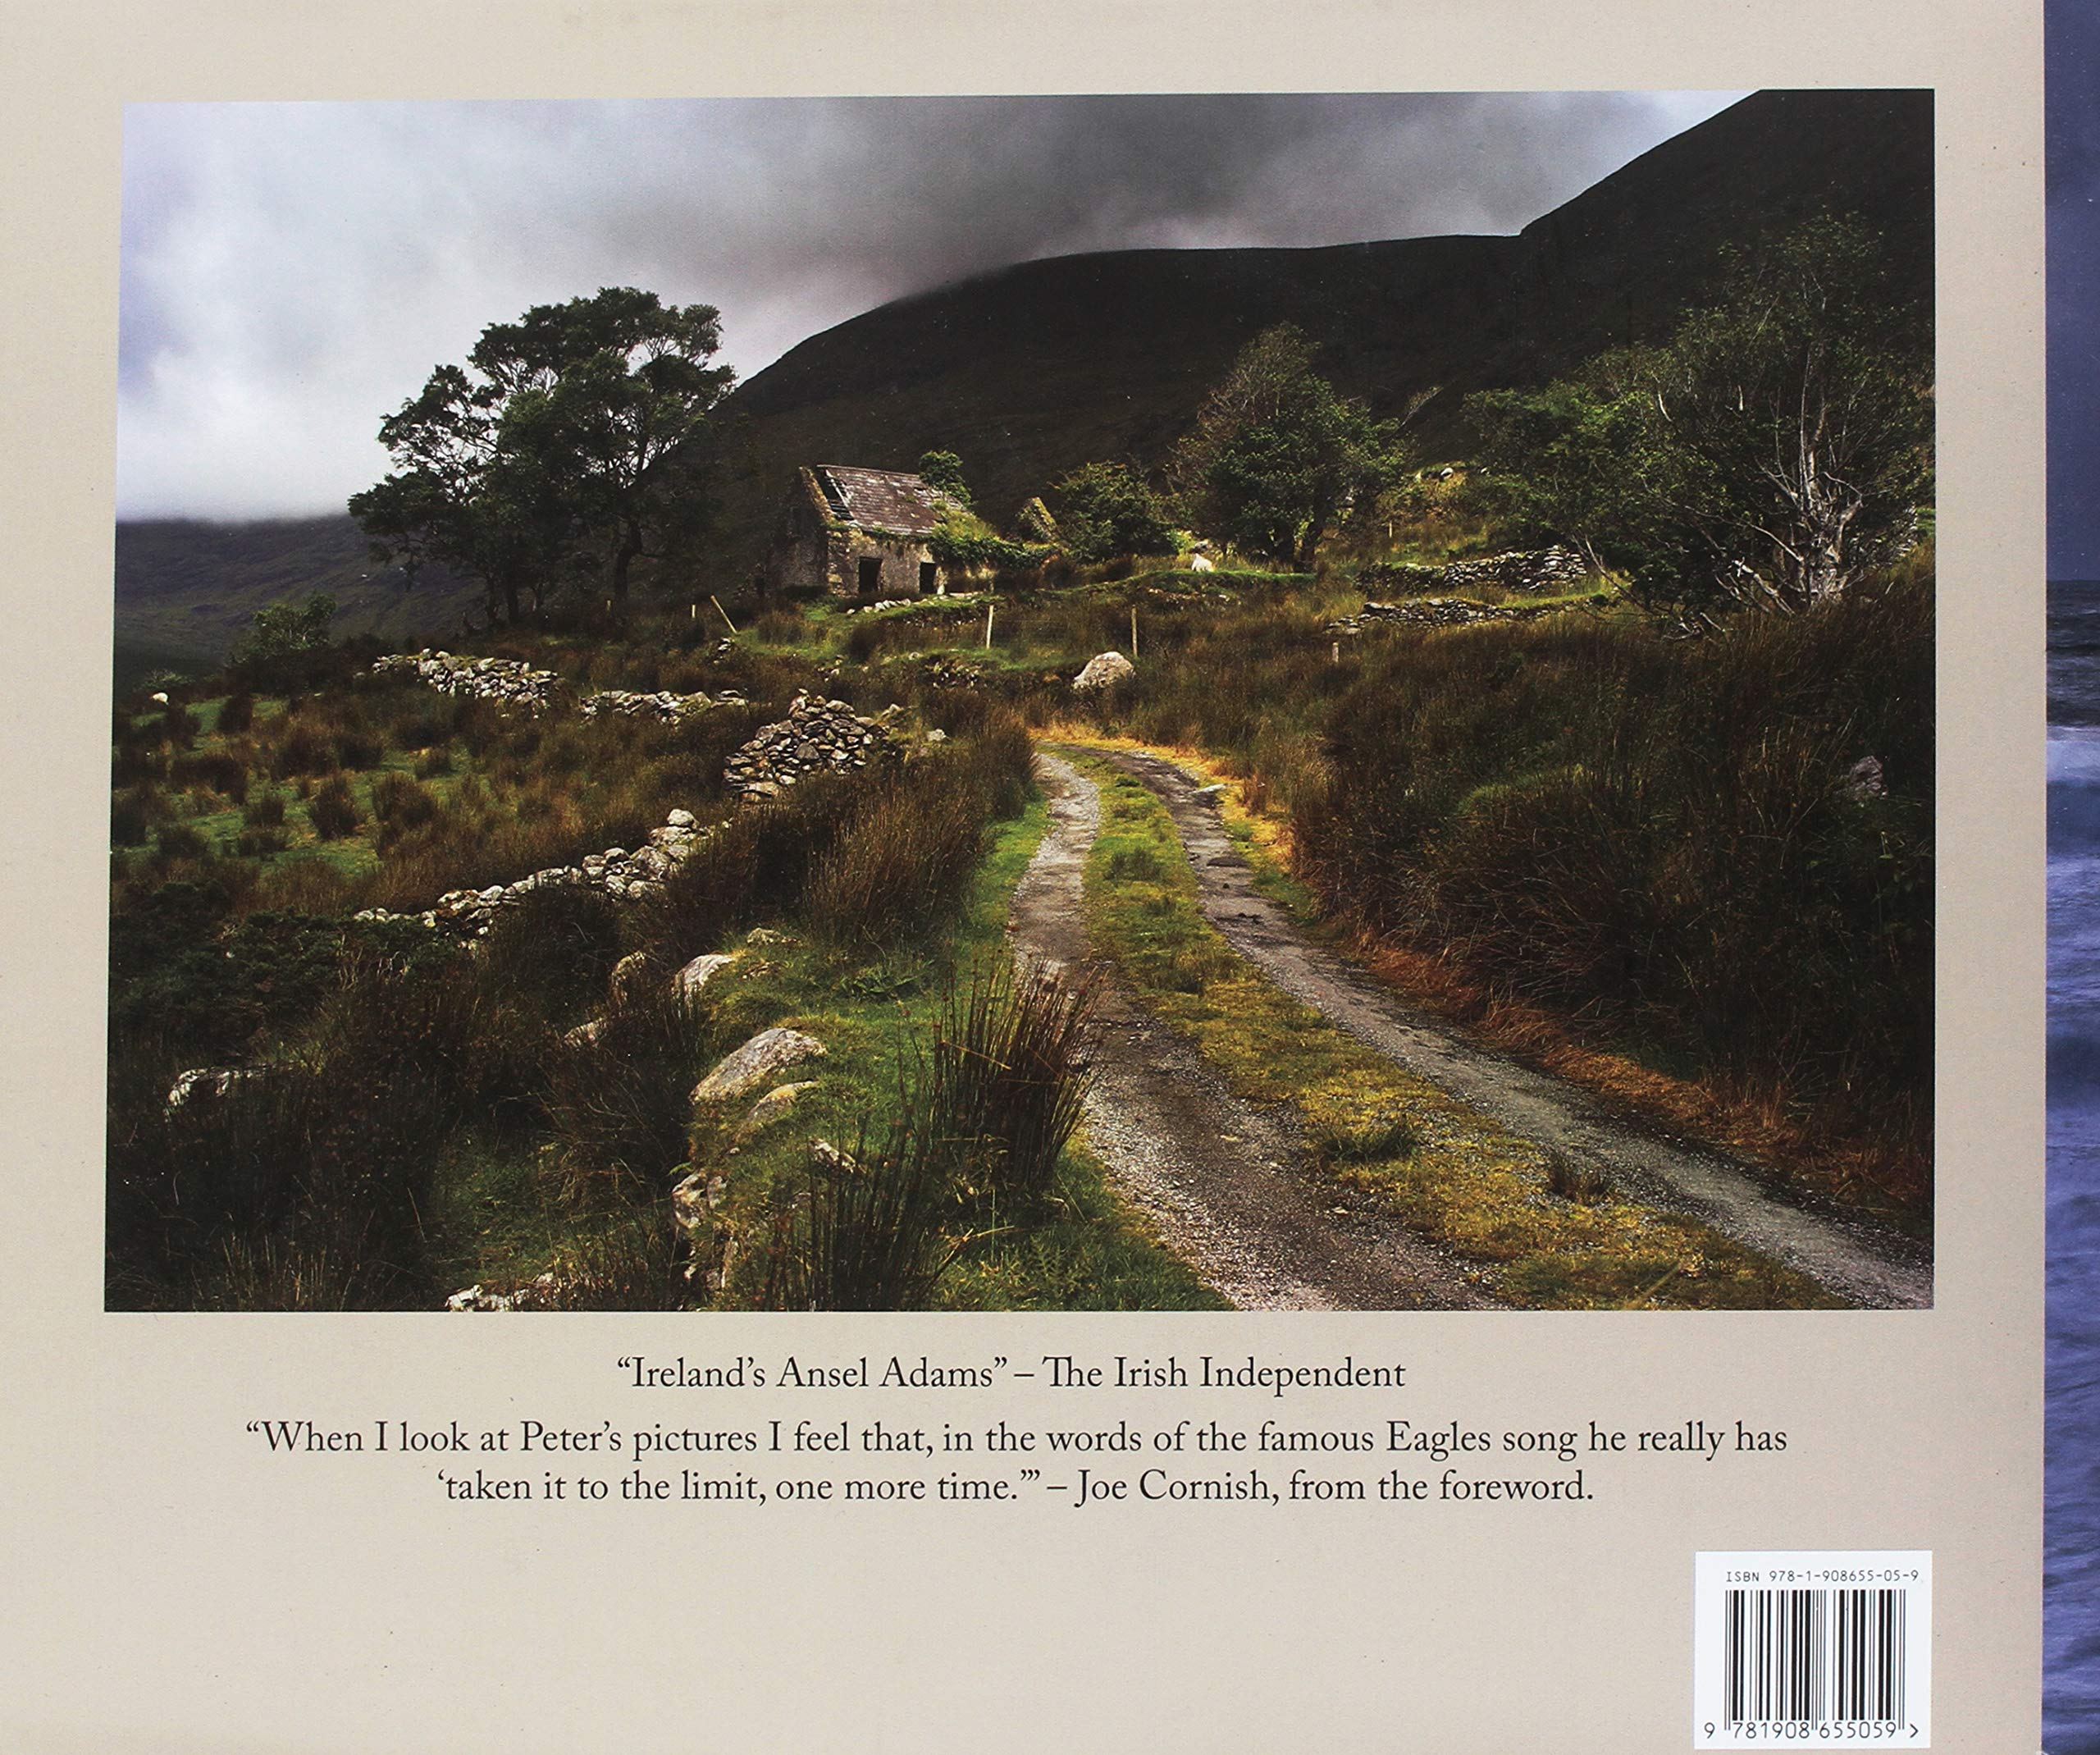 The Irish Light: A Collection of Landscape Photographs: Amazon.co.uk: Peter  Cox: Books